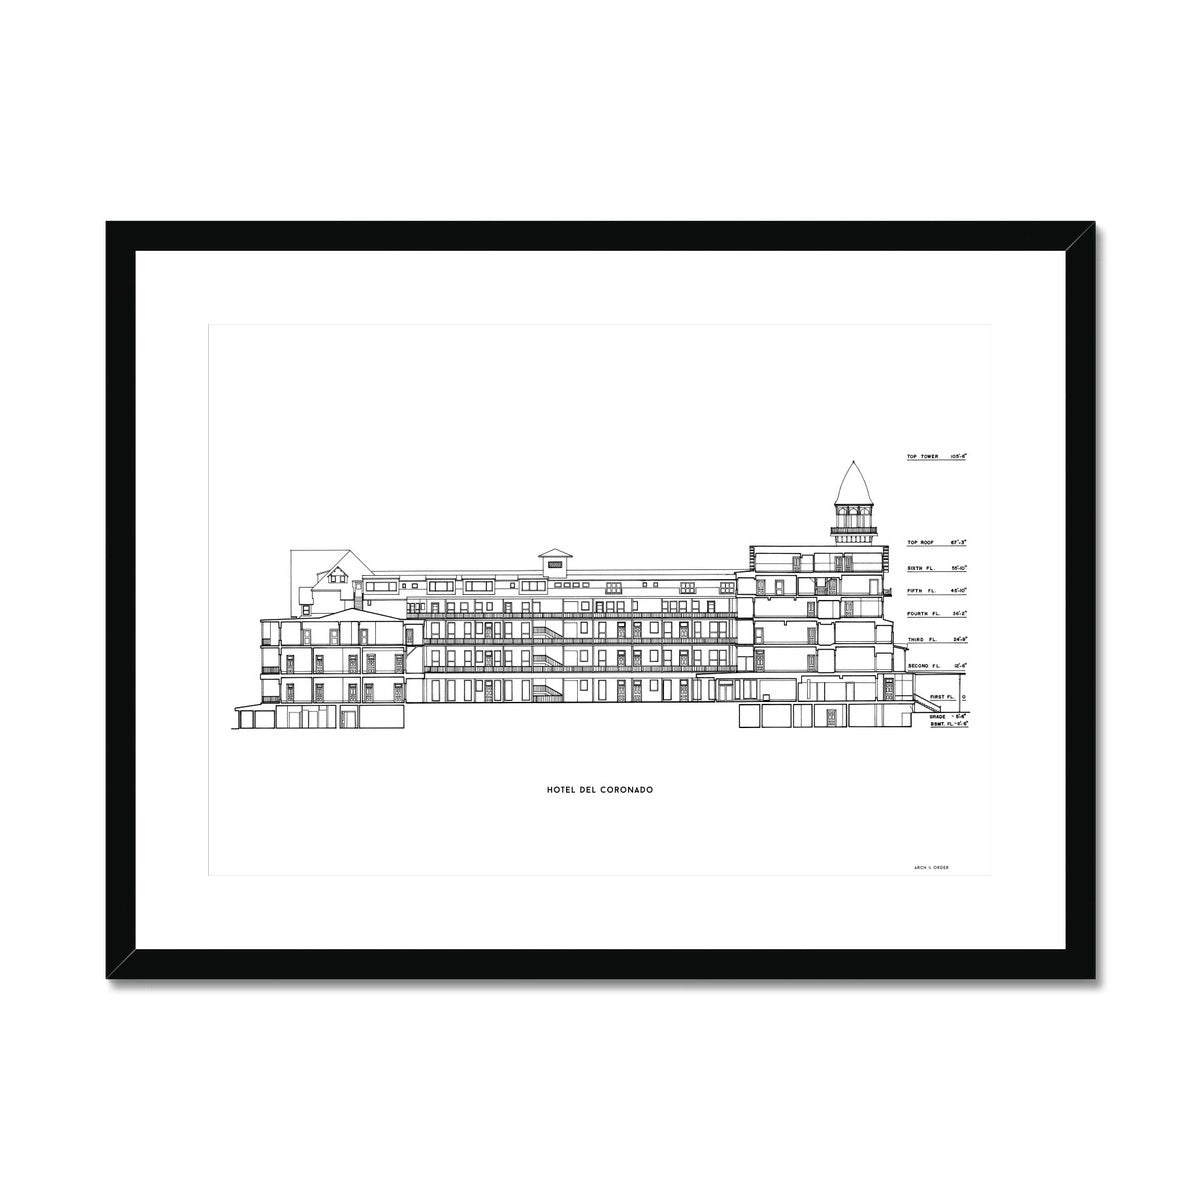 Hotel Del Coronado - Cross Section - White -  Framed & Mounted Print